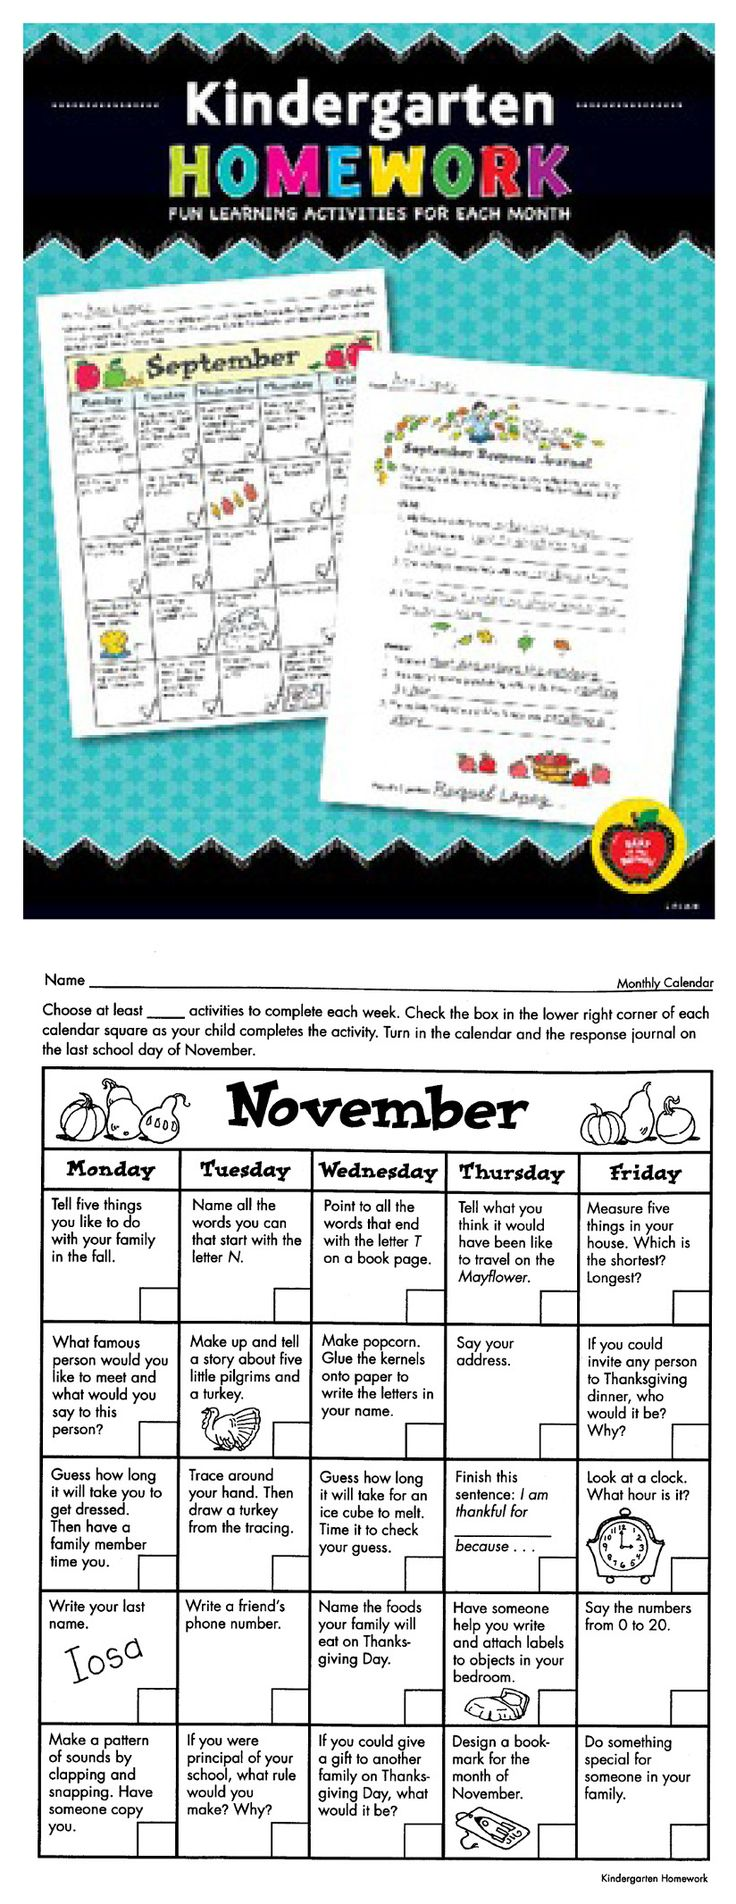 Kindergarten Calendar Of Activities : Bästa homework idéerna på pinterest ans matte